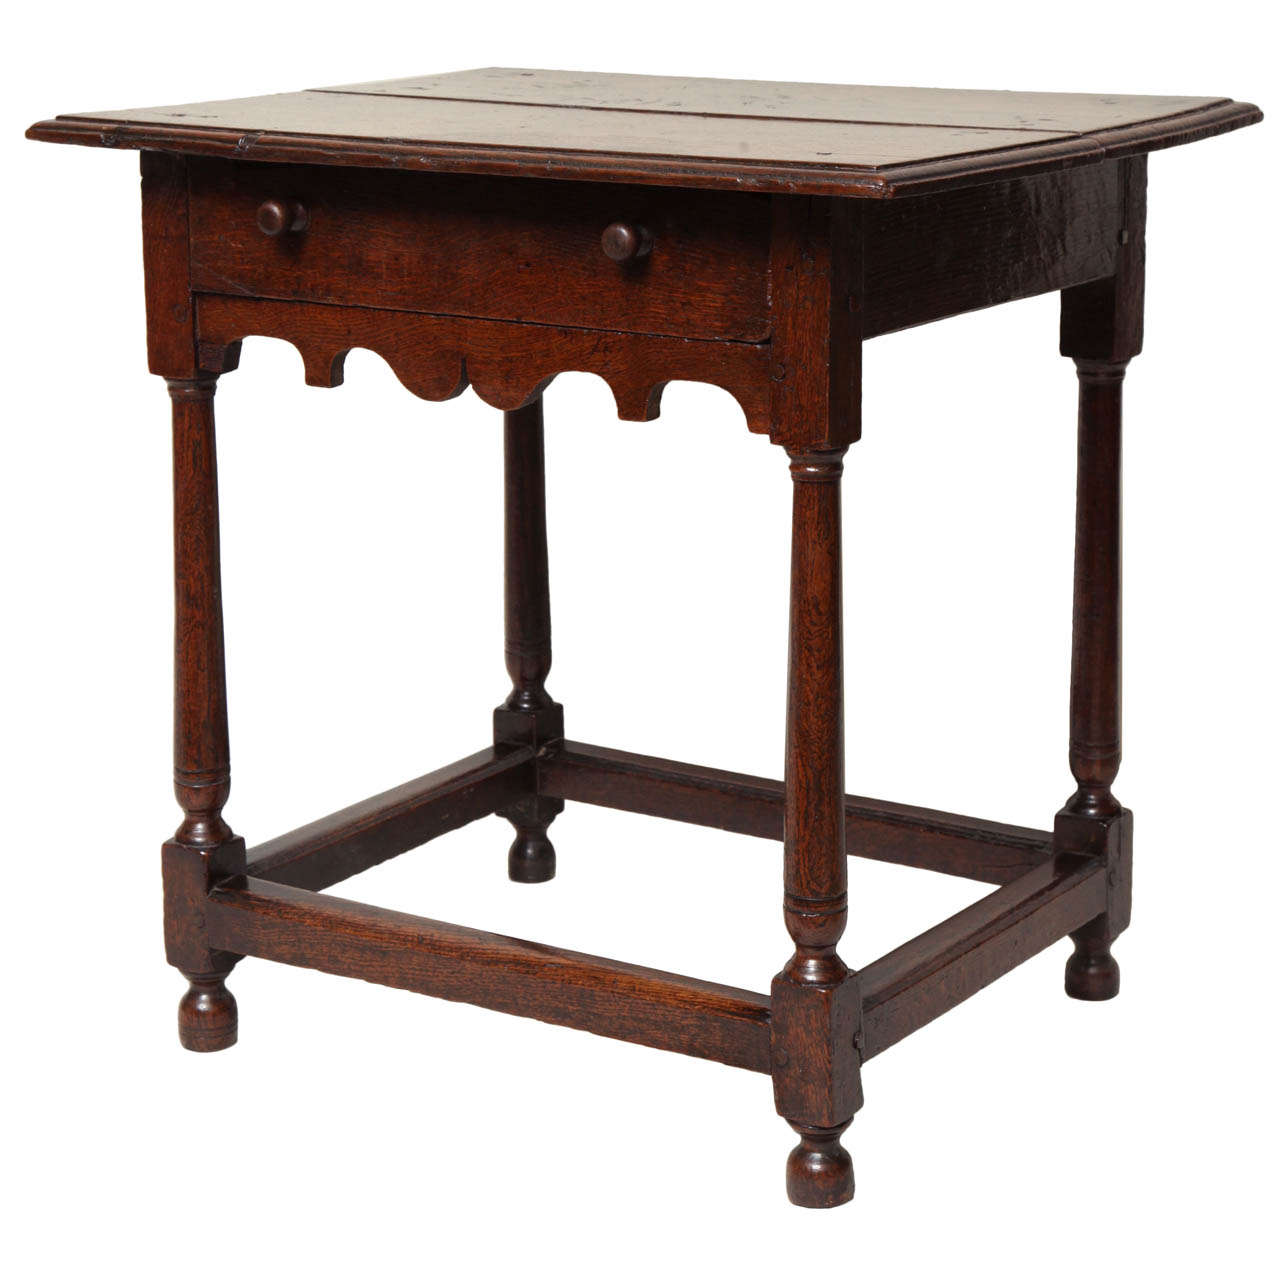 Early 18th Century English Oak Table